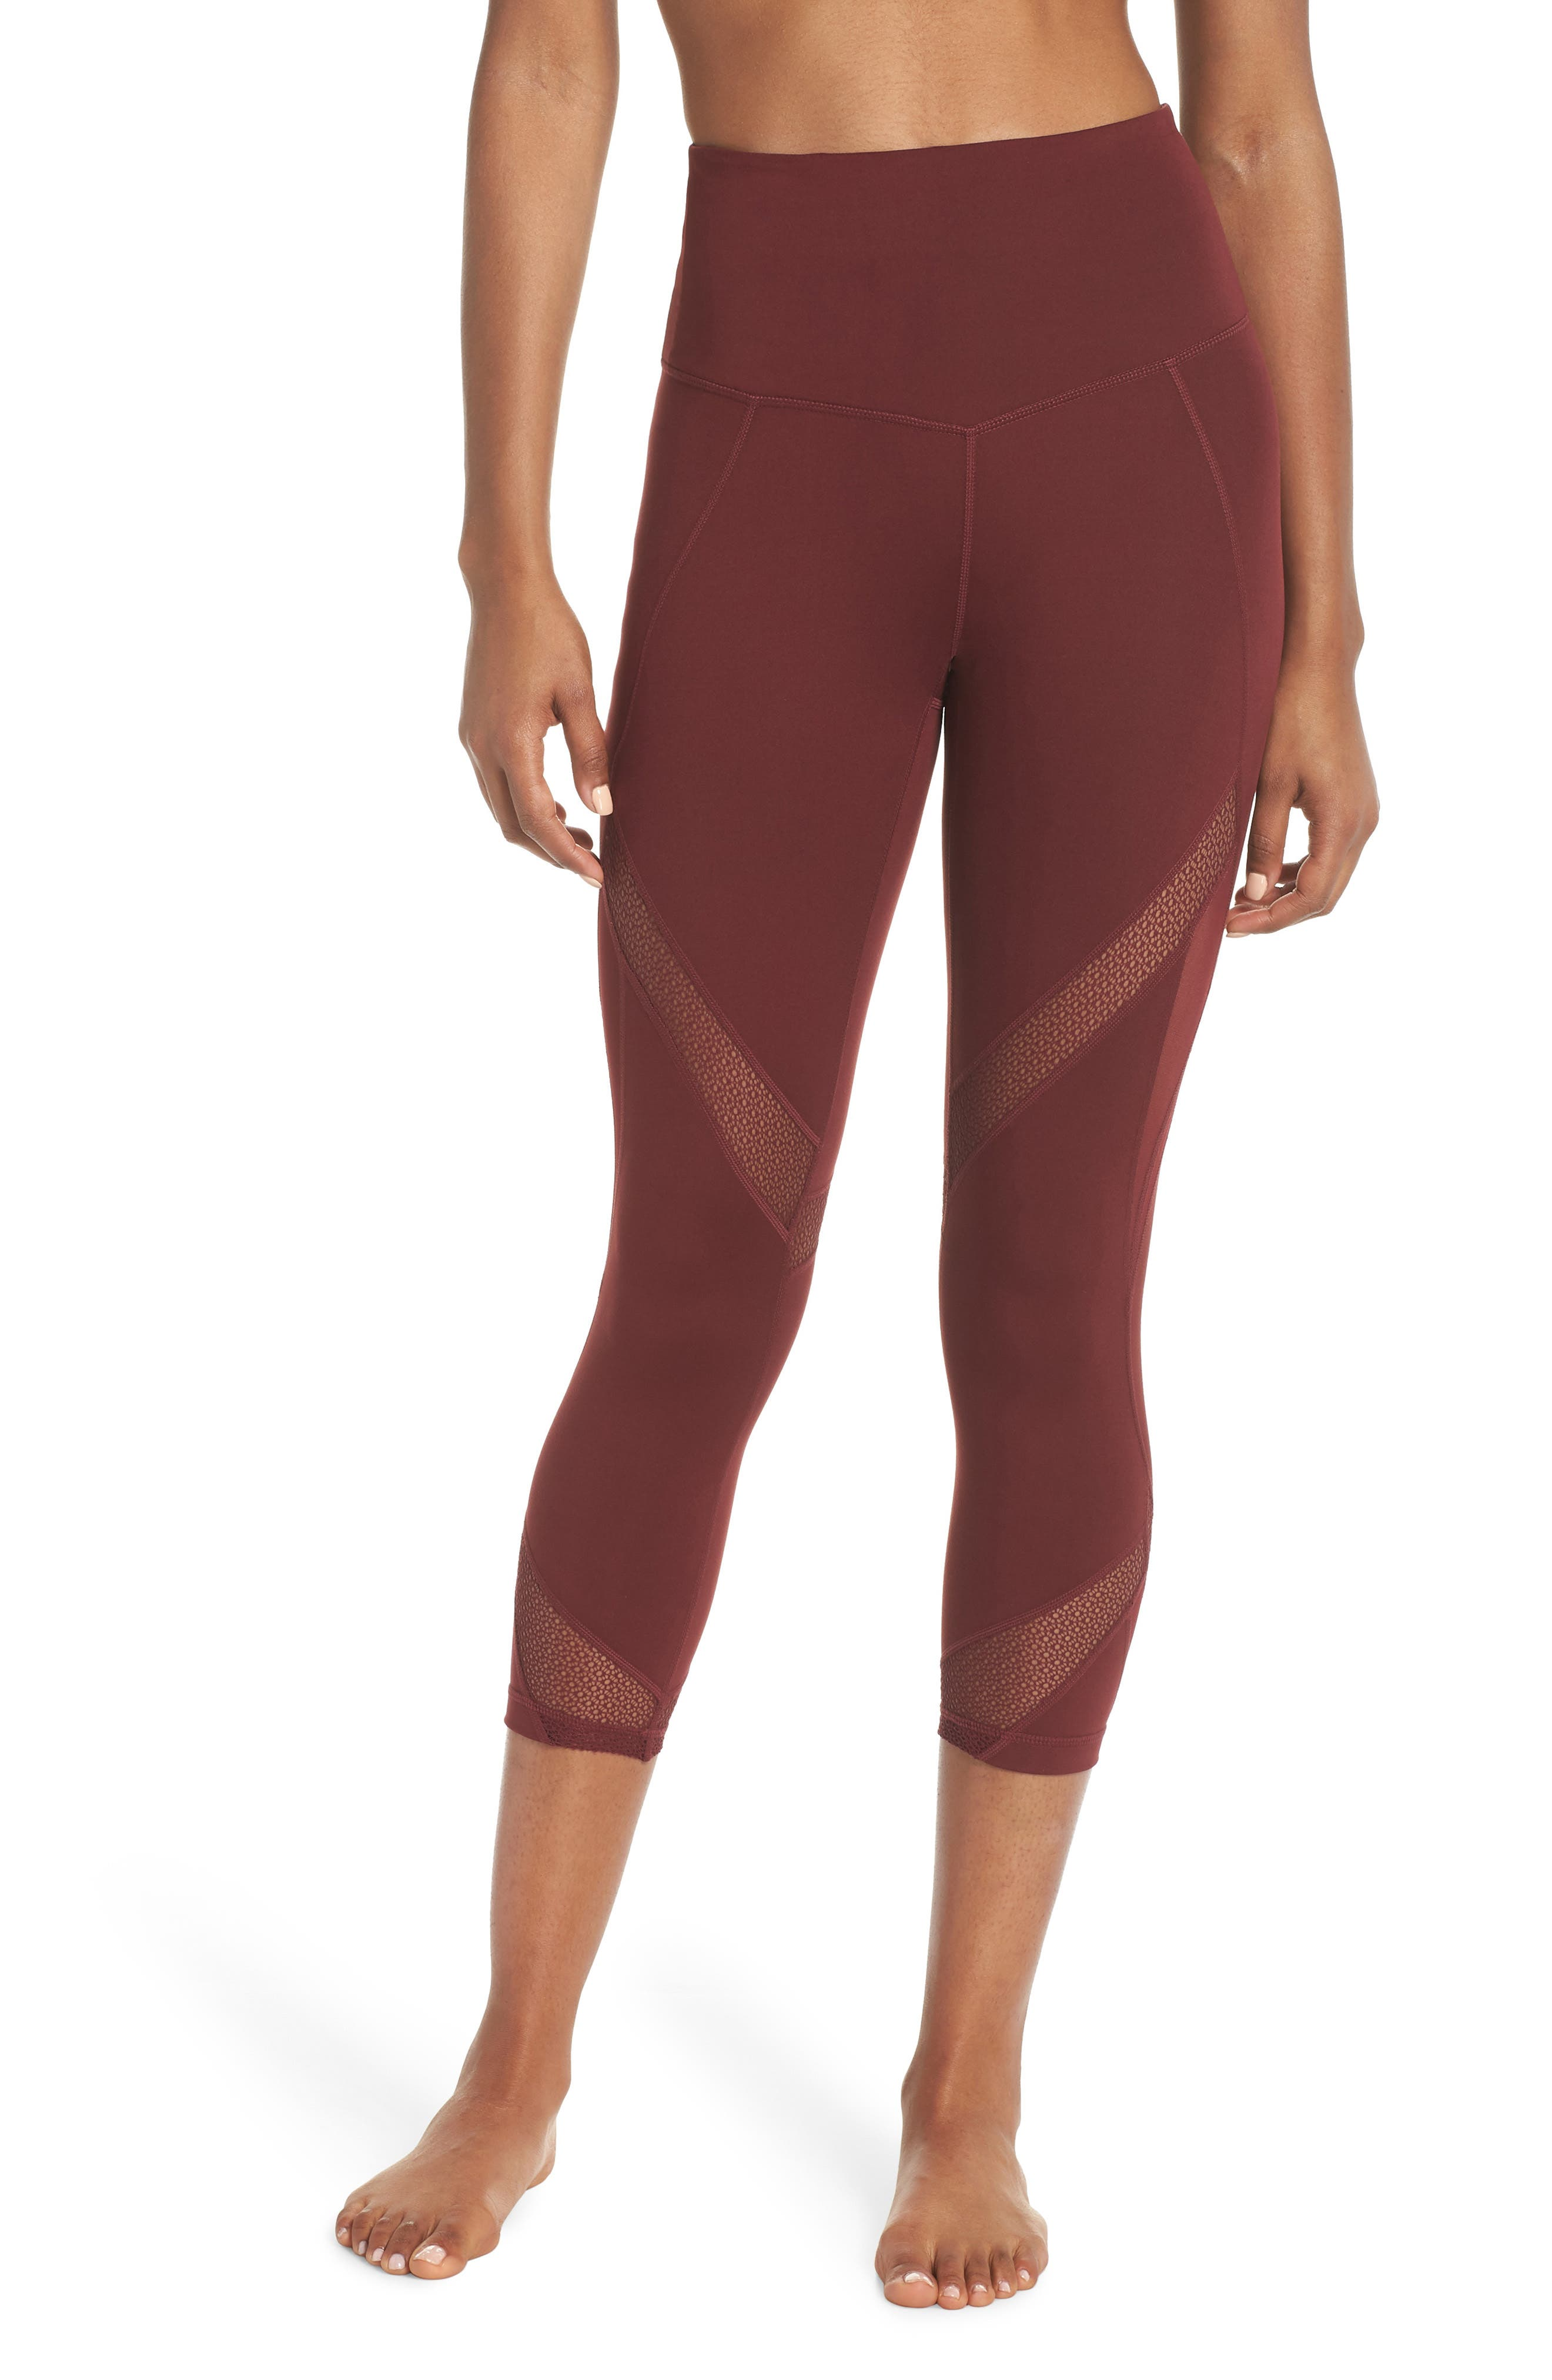 Moroccan High Waist Crop Leggings,                         Main,                         color, RED TANNIN